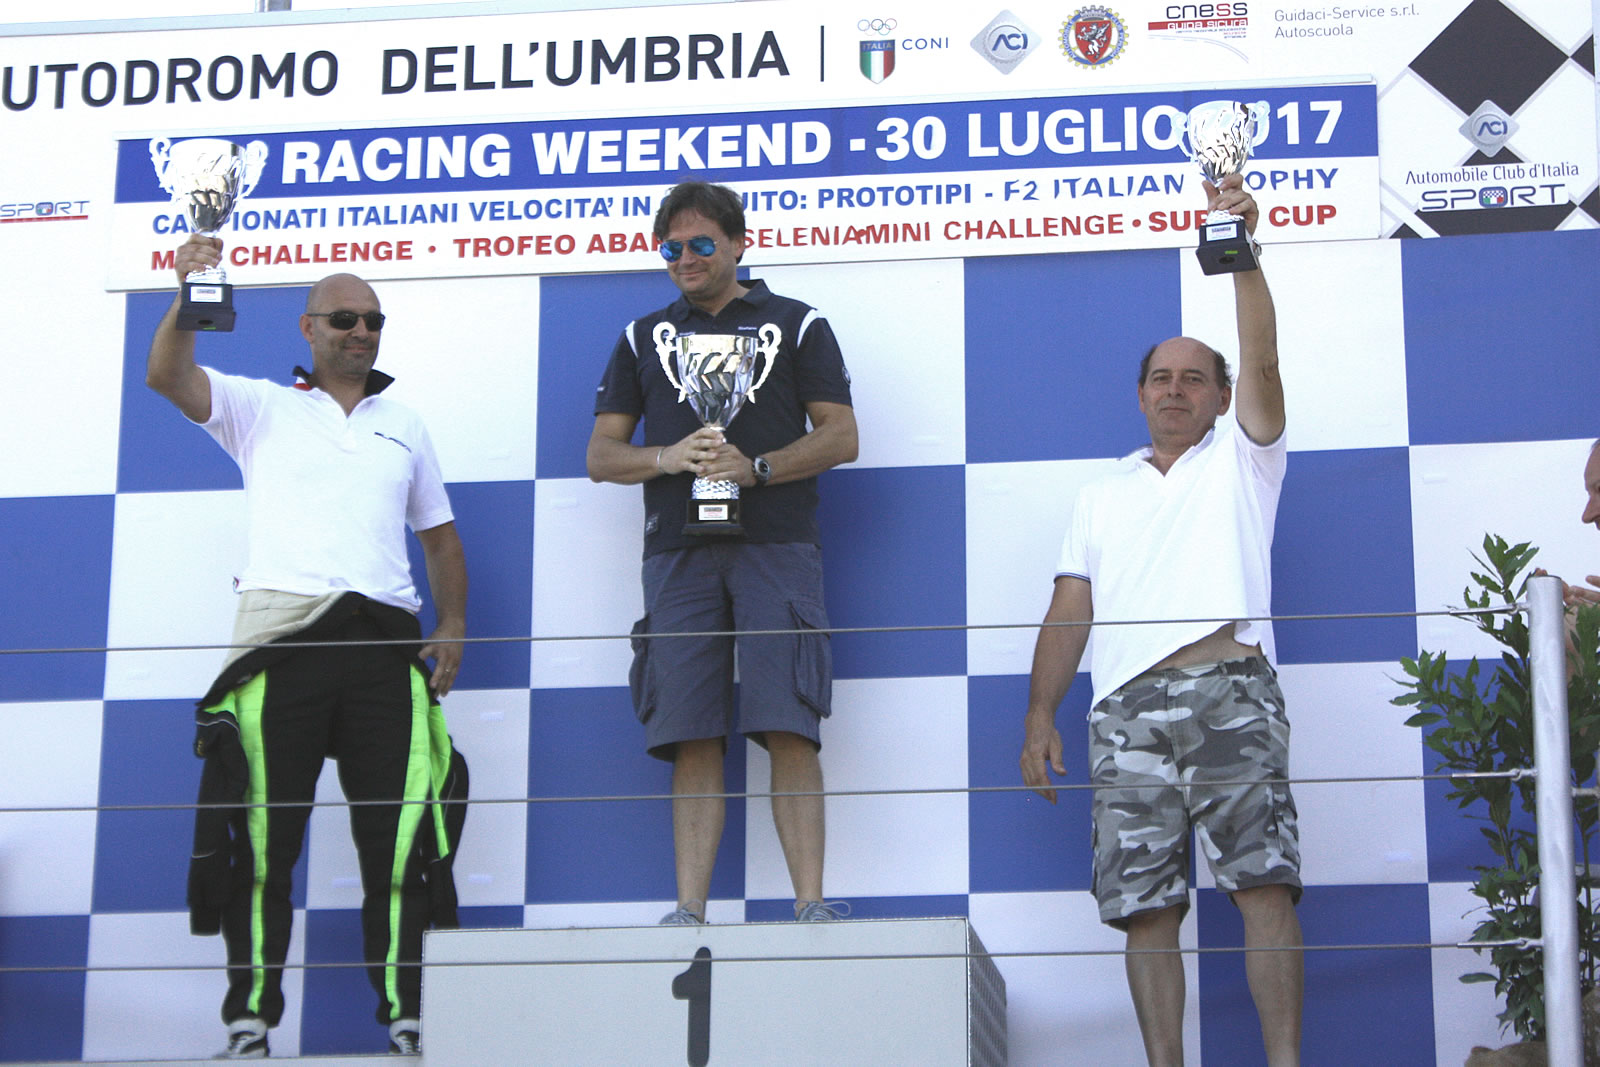 ACI Racing - Mauro Cesari podium - BlackM - SiisSoft